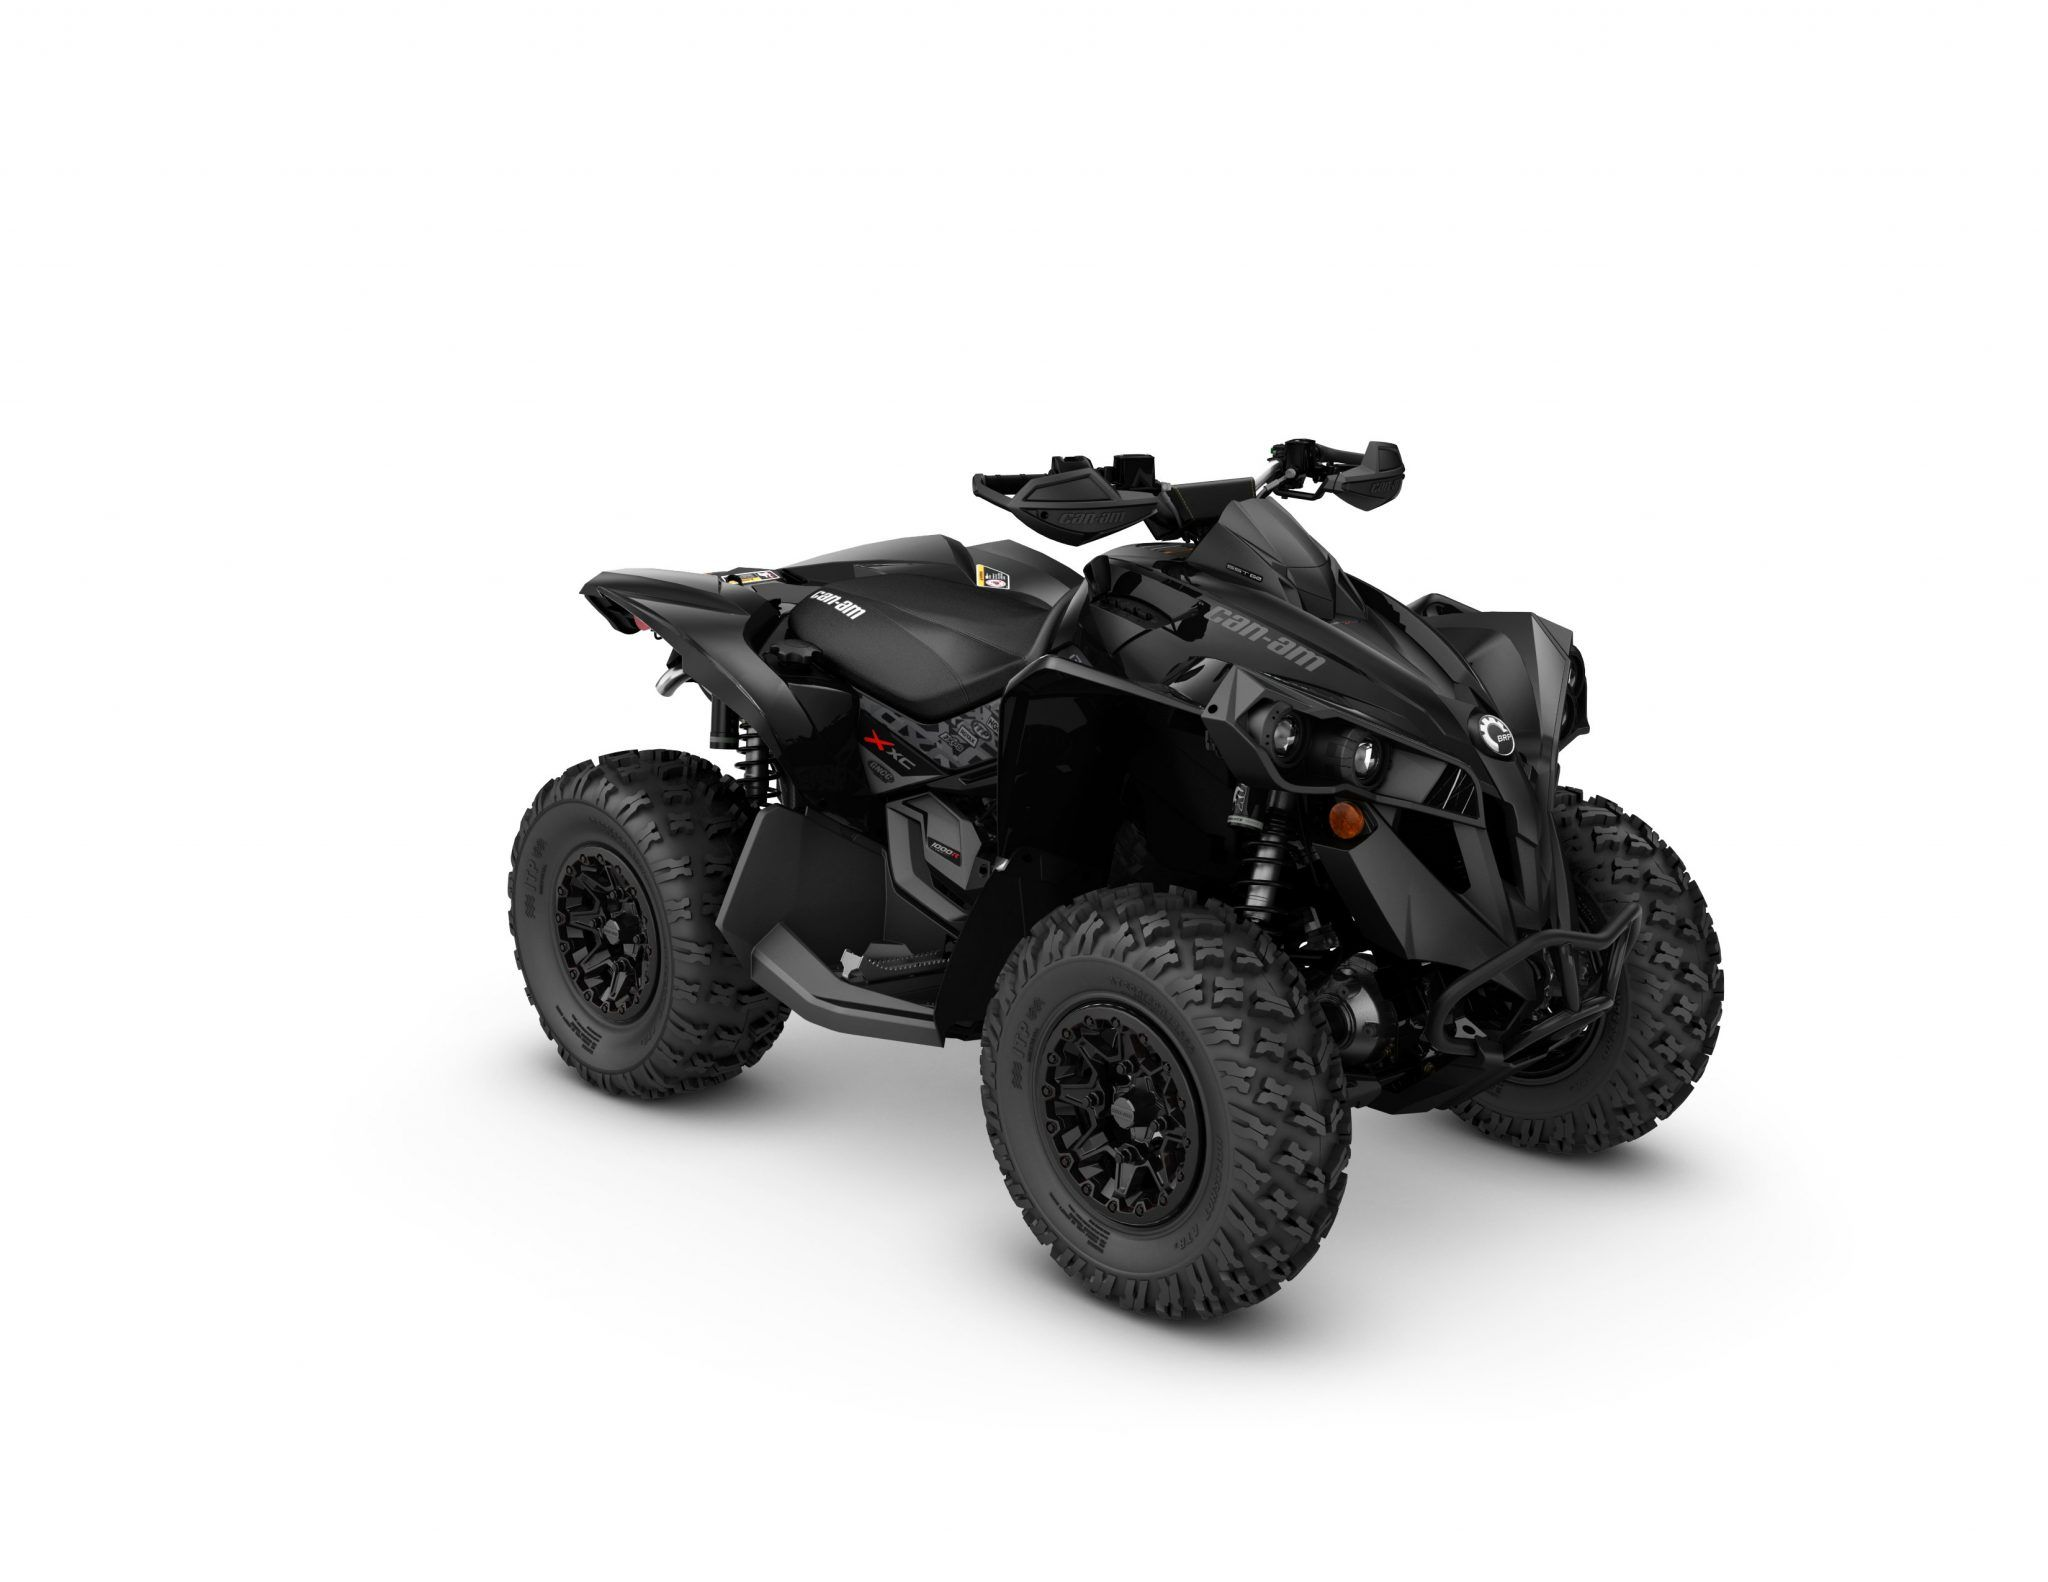 2017 CanAm Lineup just released! Atv, Can am, Four wheelers